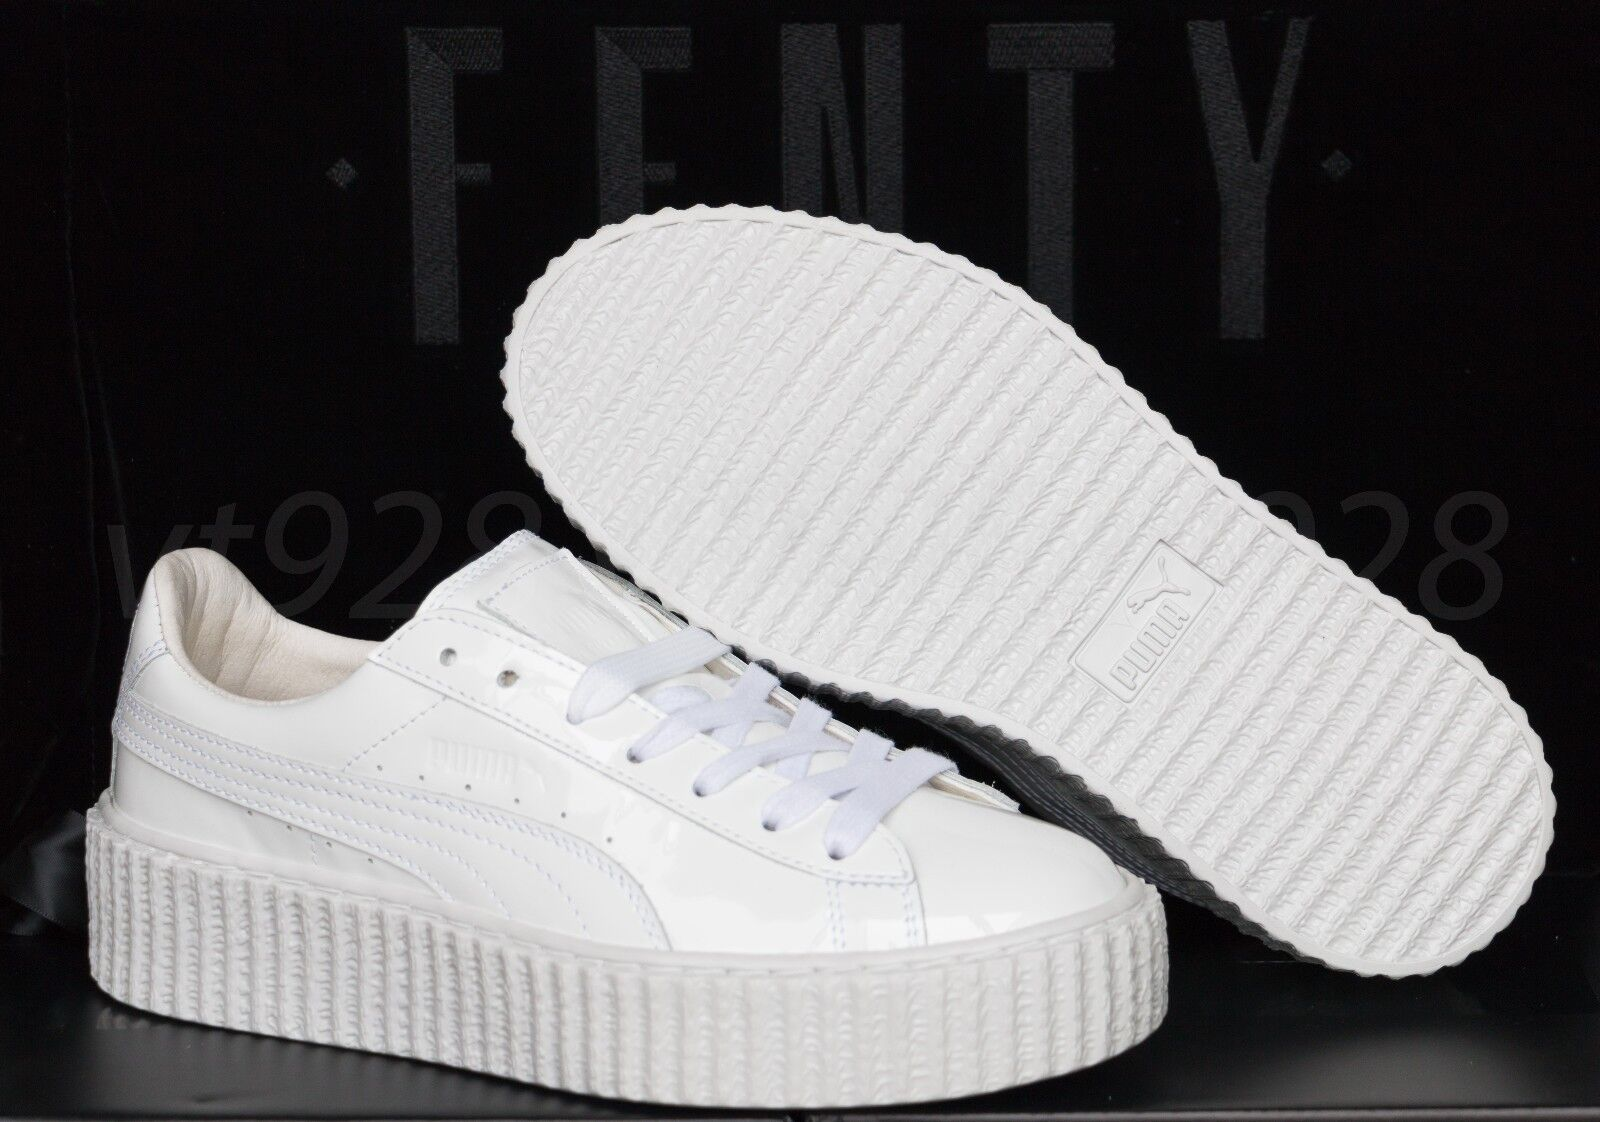 NEW PUMA FENTY RIHANNA CREEPERS GLOSSY WHITE LEATHER MEN'S SHOES ALL SIZES